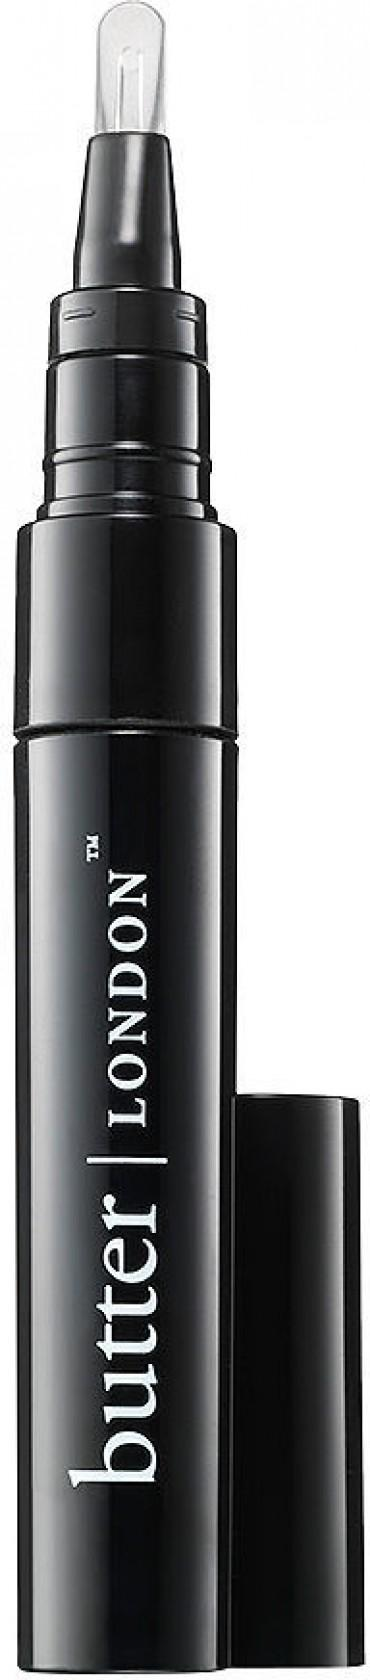 Butter LONDON Nail Nosh Strengthening Serum 0.12 oz (3.4 g)